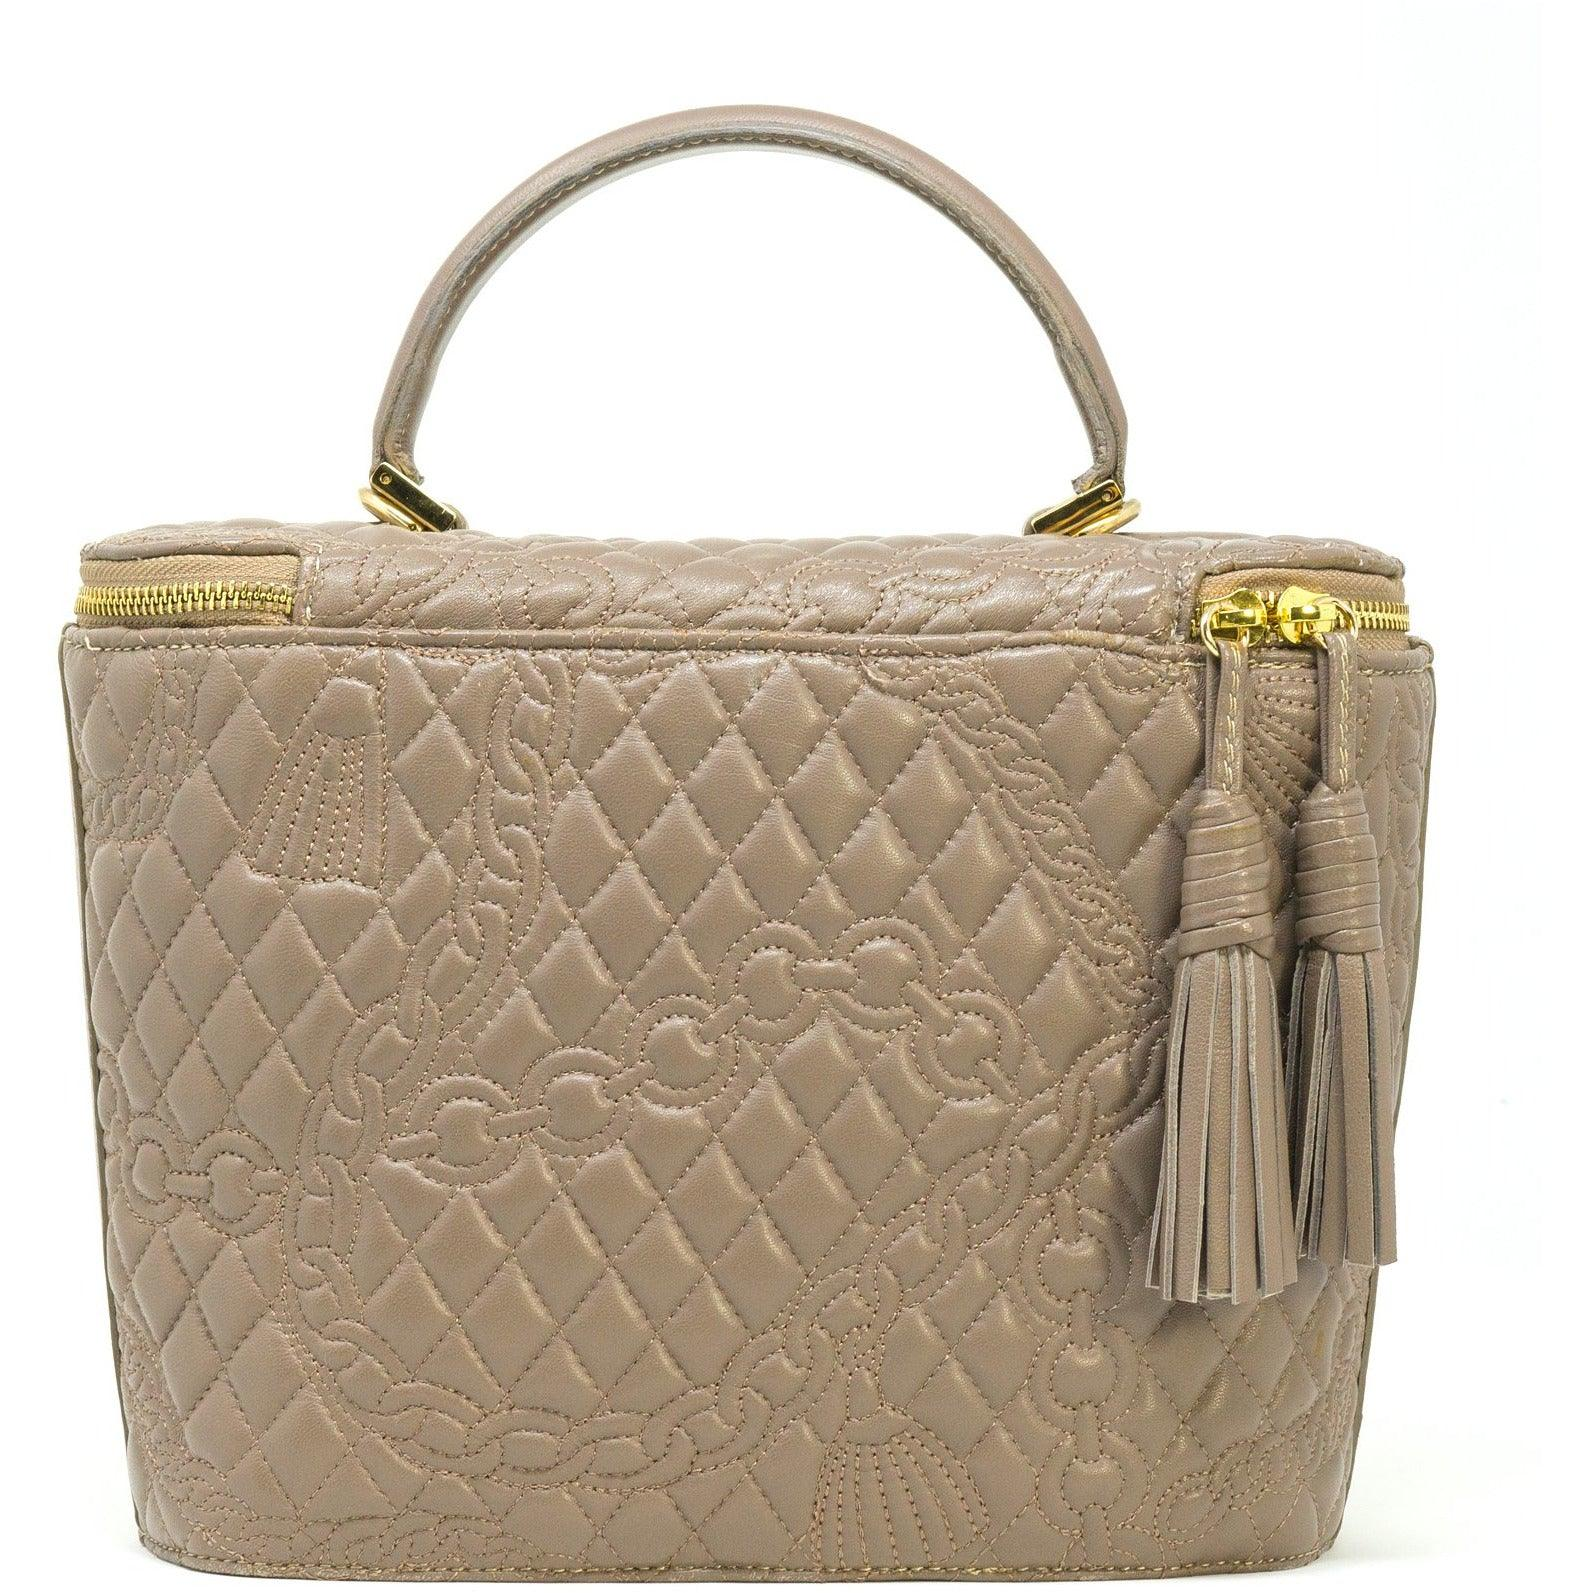 Top Handle Bag in Beige Quilted Leather